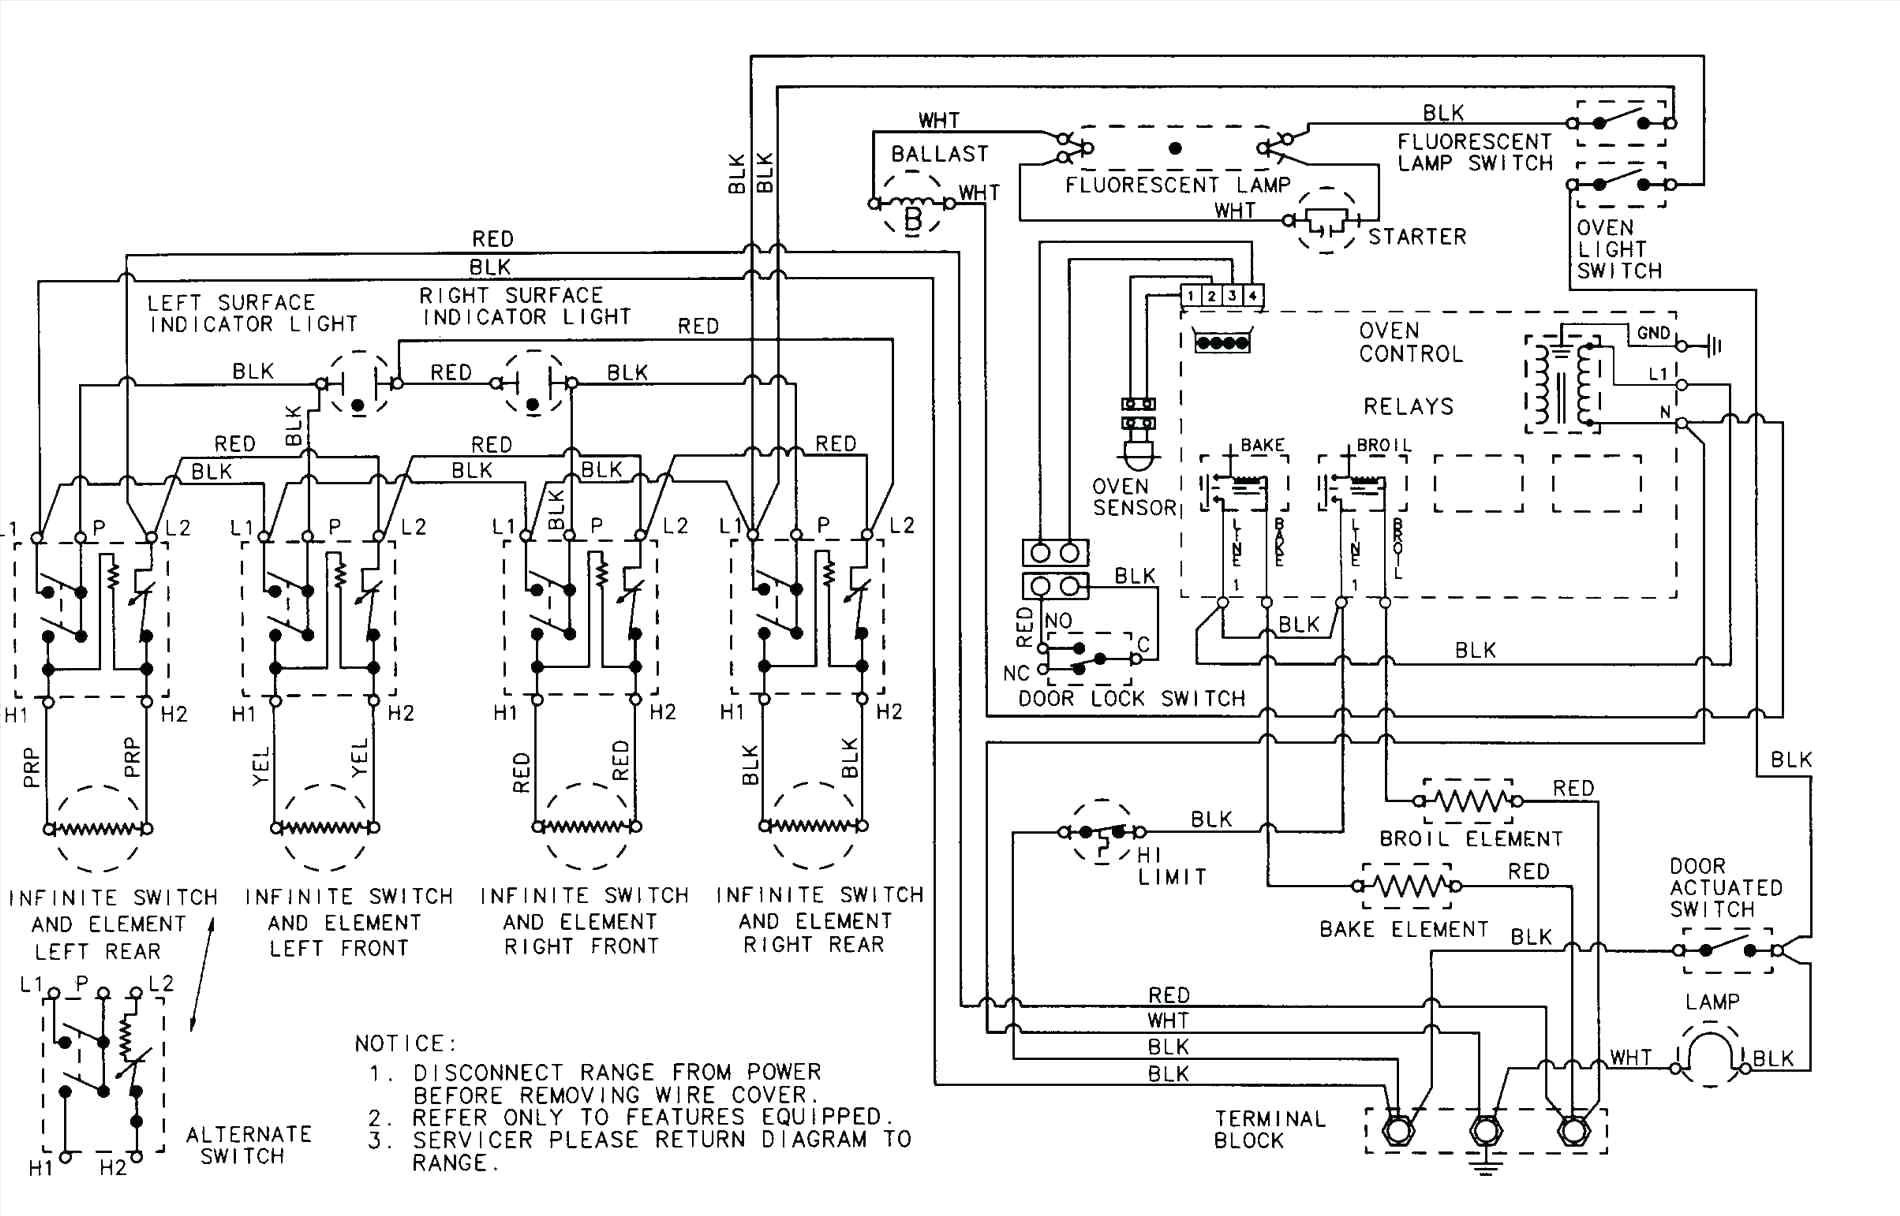 ge dryer wiring diagram Collection-Ge Dryer Start Switch Wiring Diagram Fresh Ge Dryer Timer Wiring Diagram Example Electrical Wiring Diagram 3-f